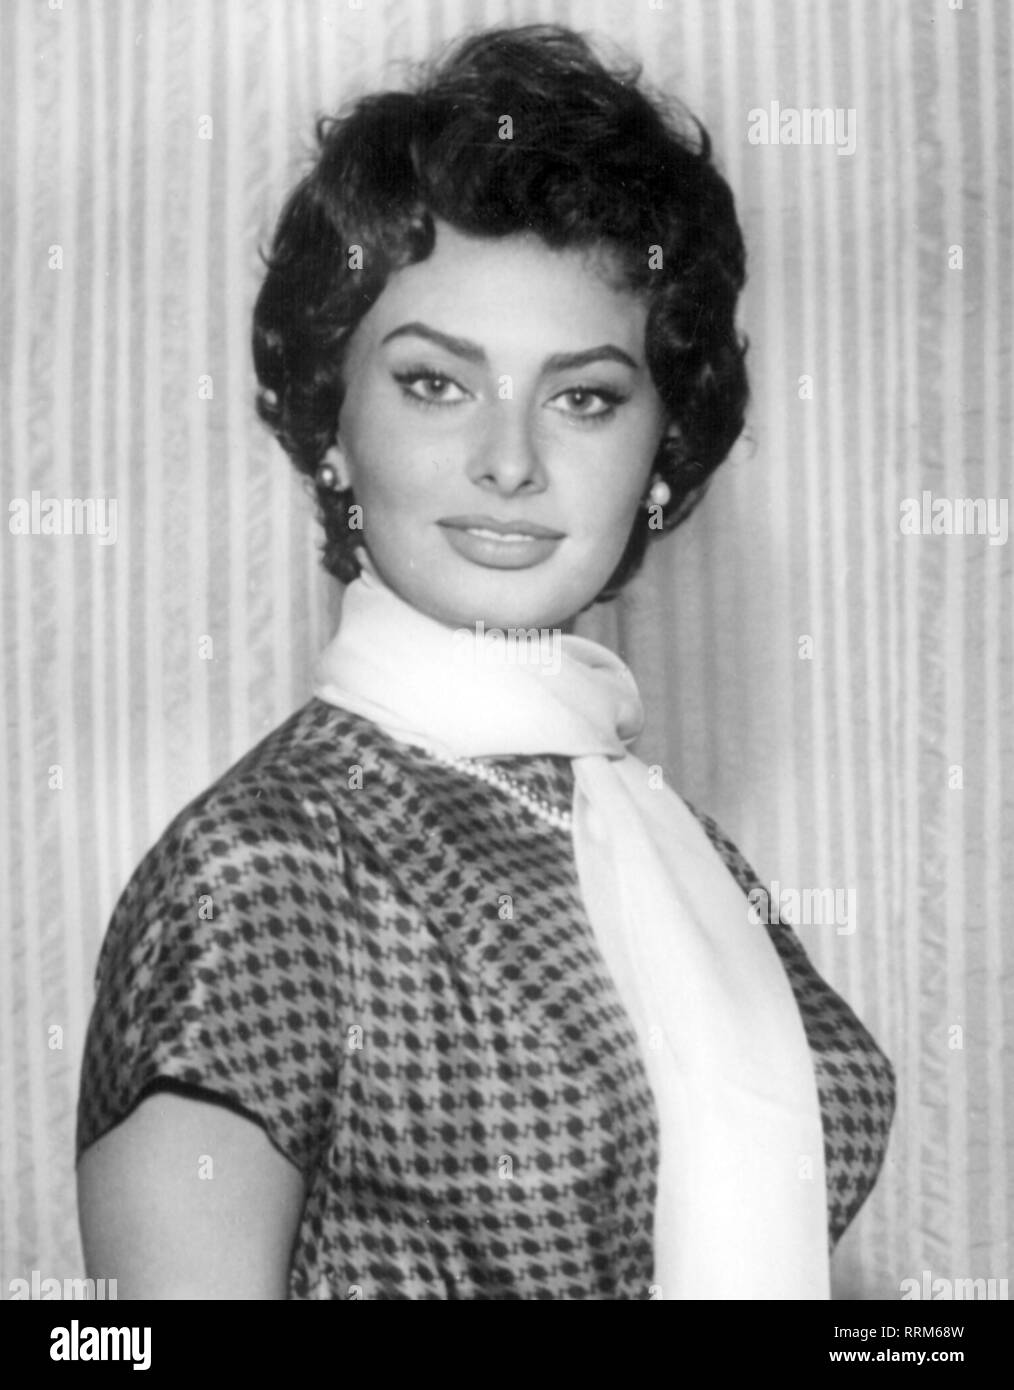 Sofia Loren High Resolution Stock Photography and Images - Alamy